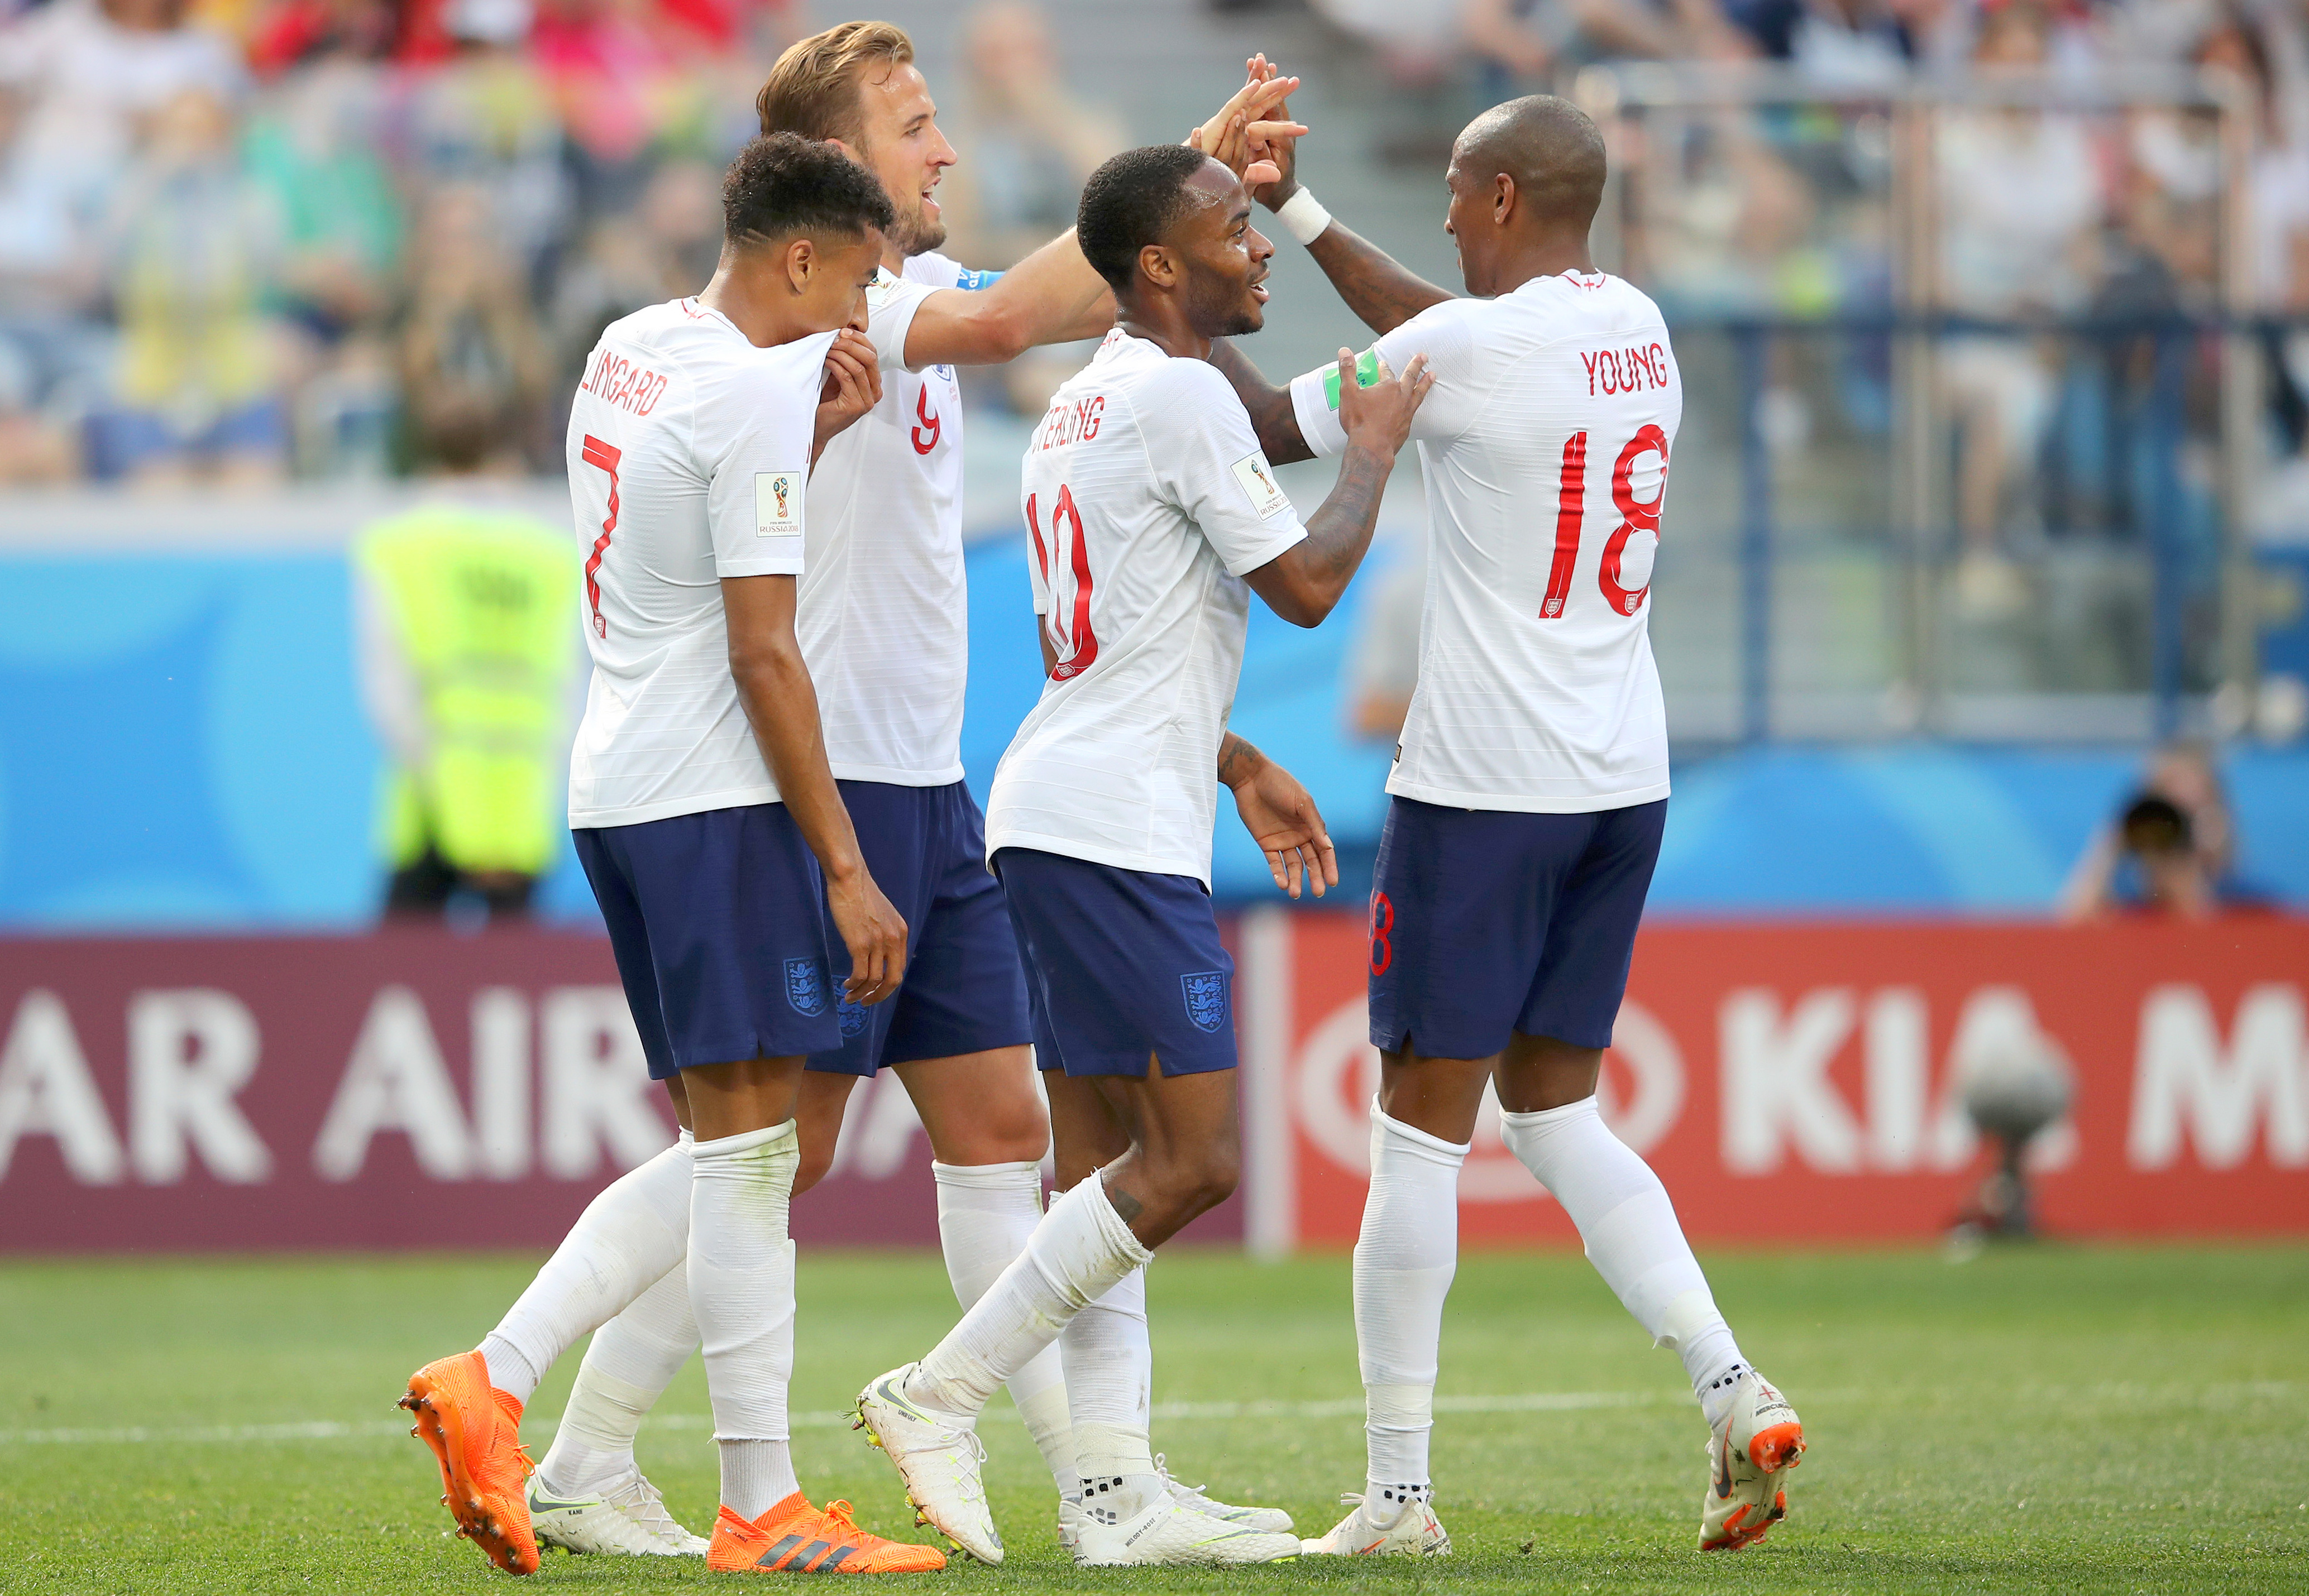 FIFA World Cup: England hammer Panama 6-1 after Kane hat-trick